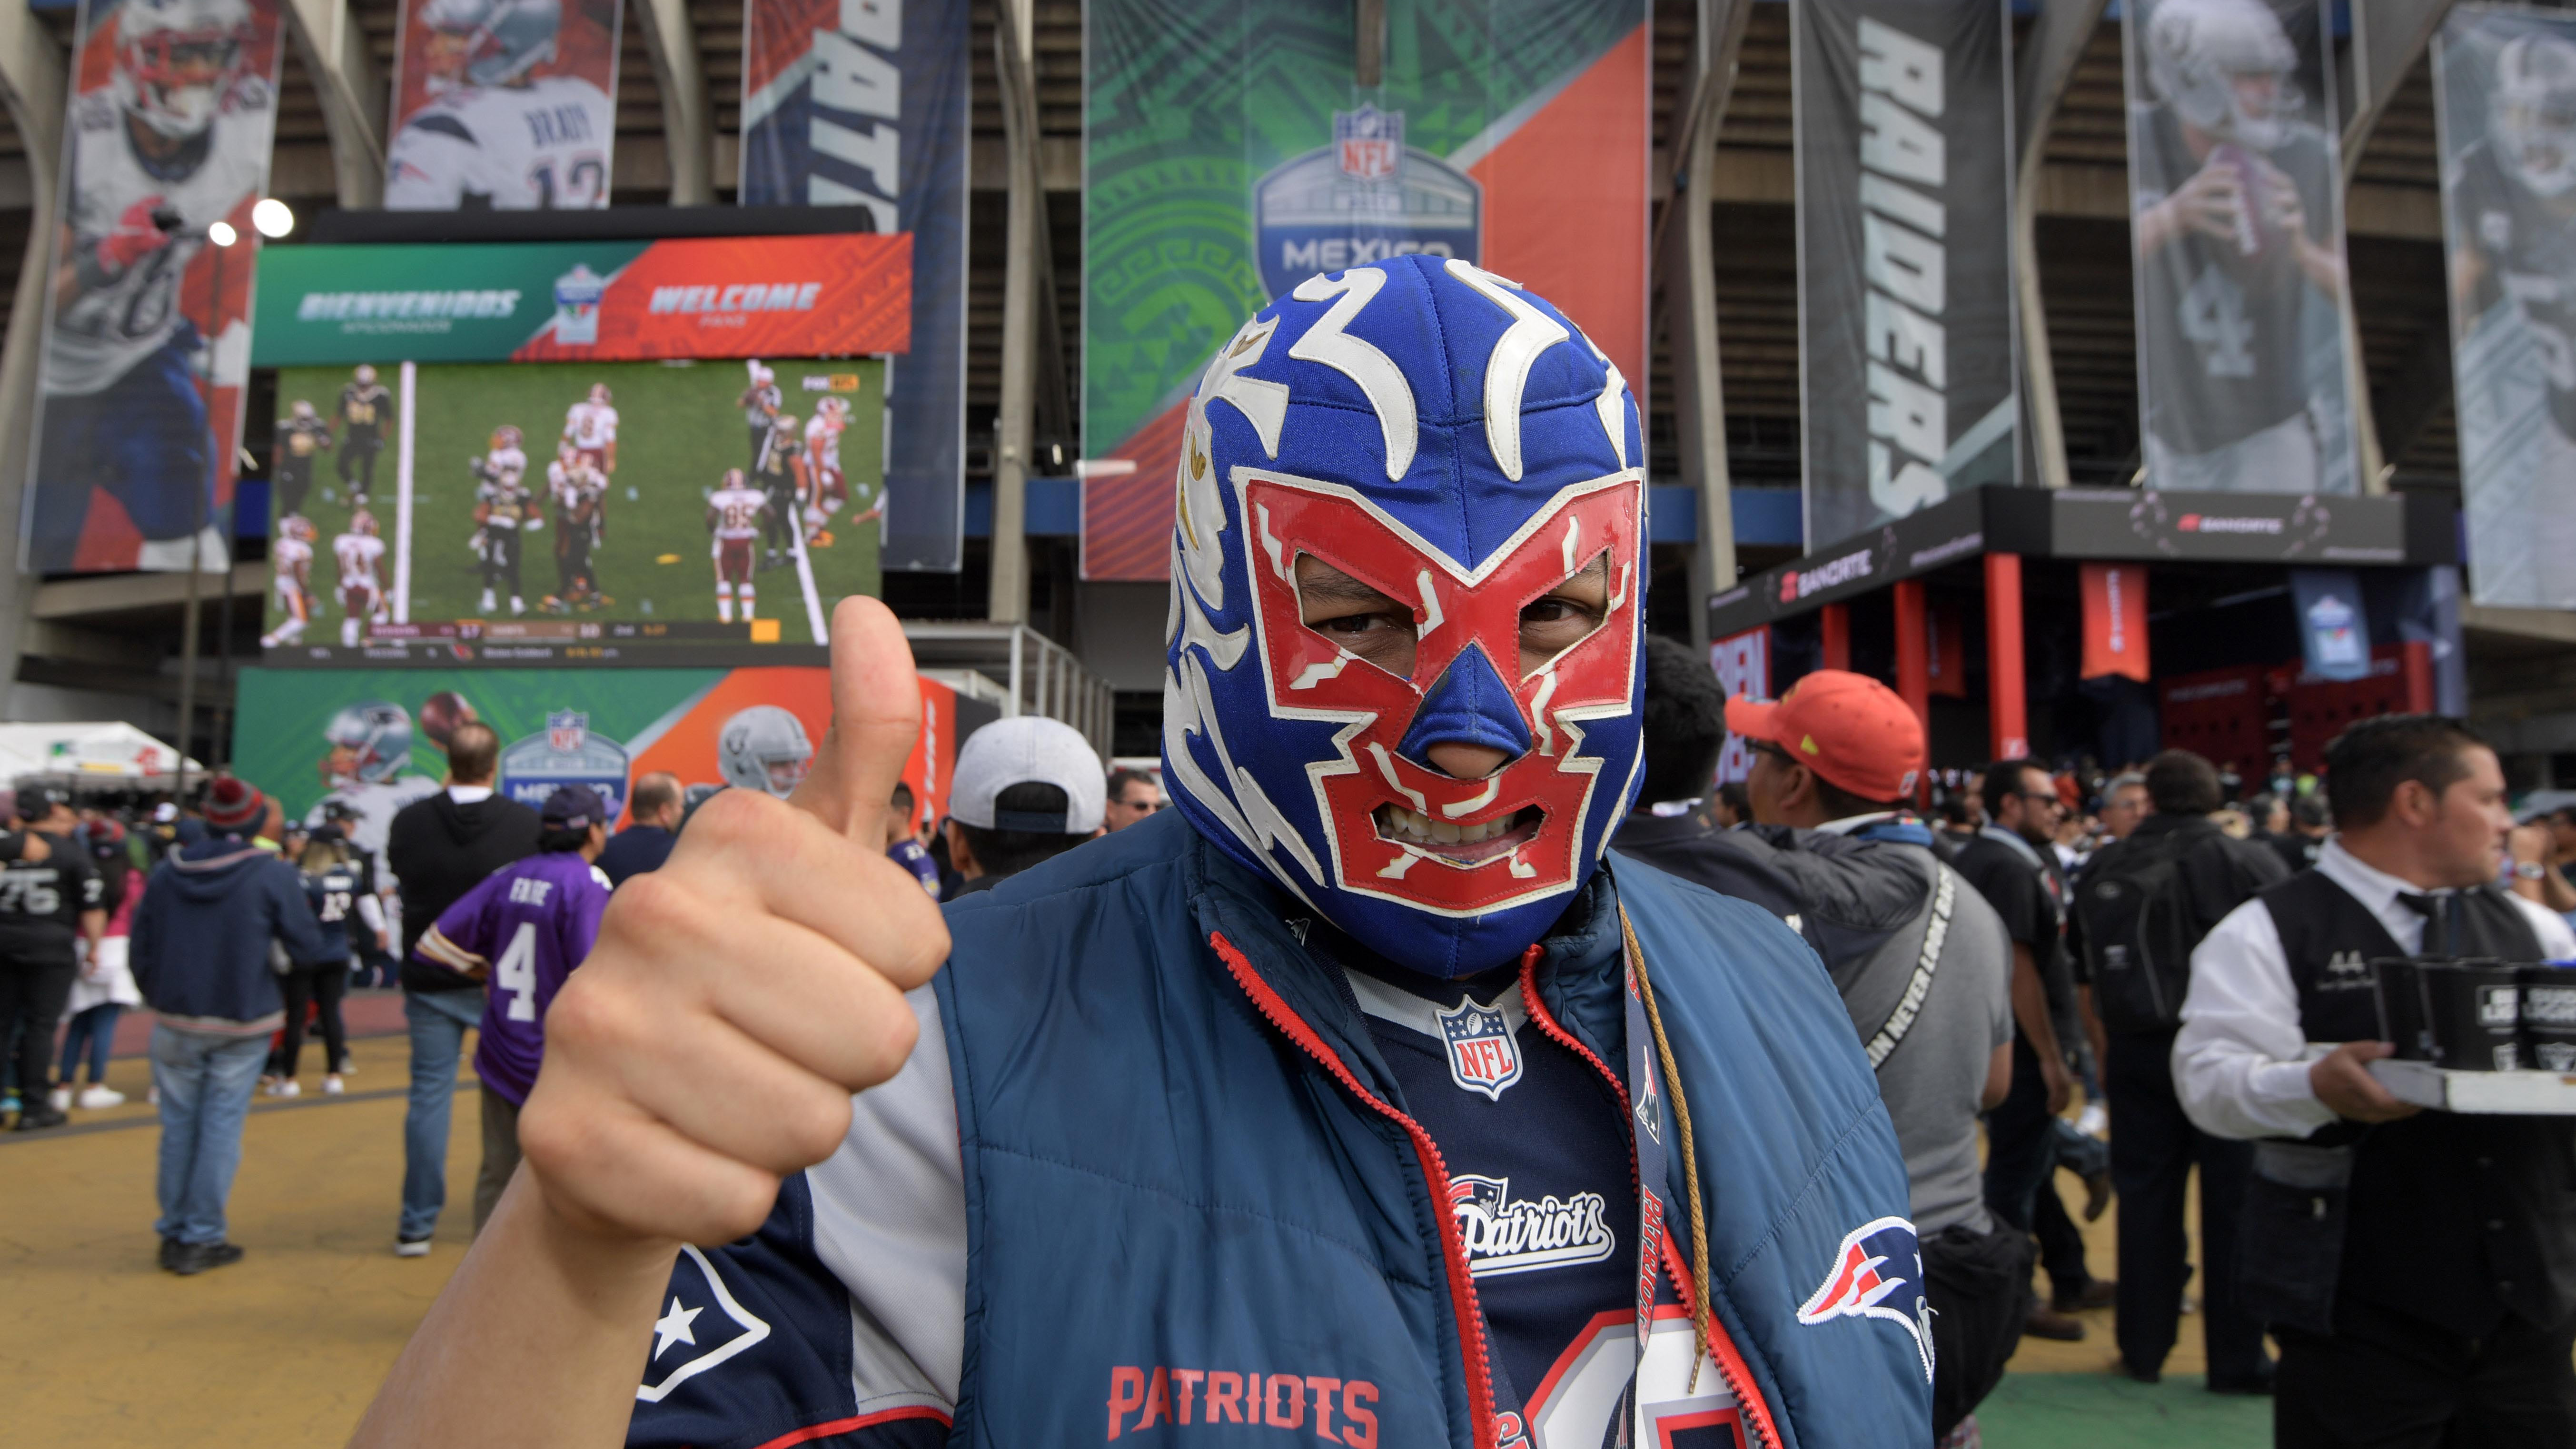 A Patriots fan poses before a NFL International Series game in Mexico City in November 2017. The Patriots have become Mexico's team. Winning helps. The Patriots are heading to their 11th Super Bowl on Sunday, and ninth since 2002, the most of any NFL fran